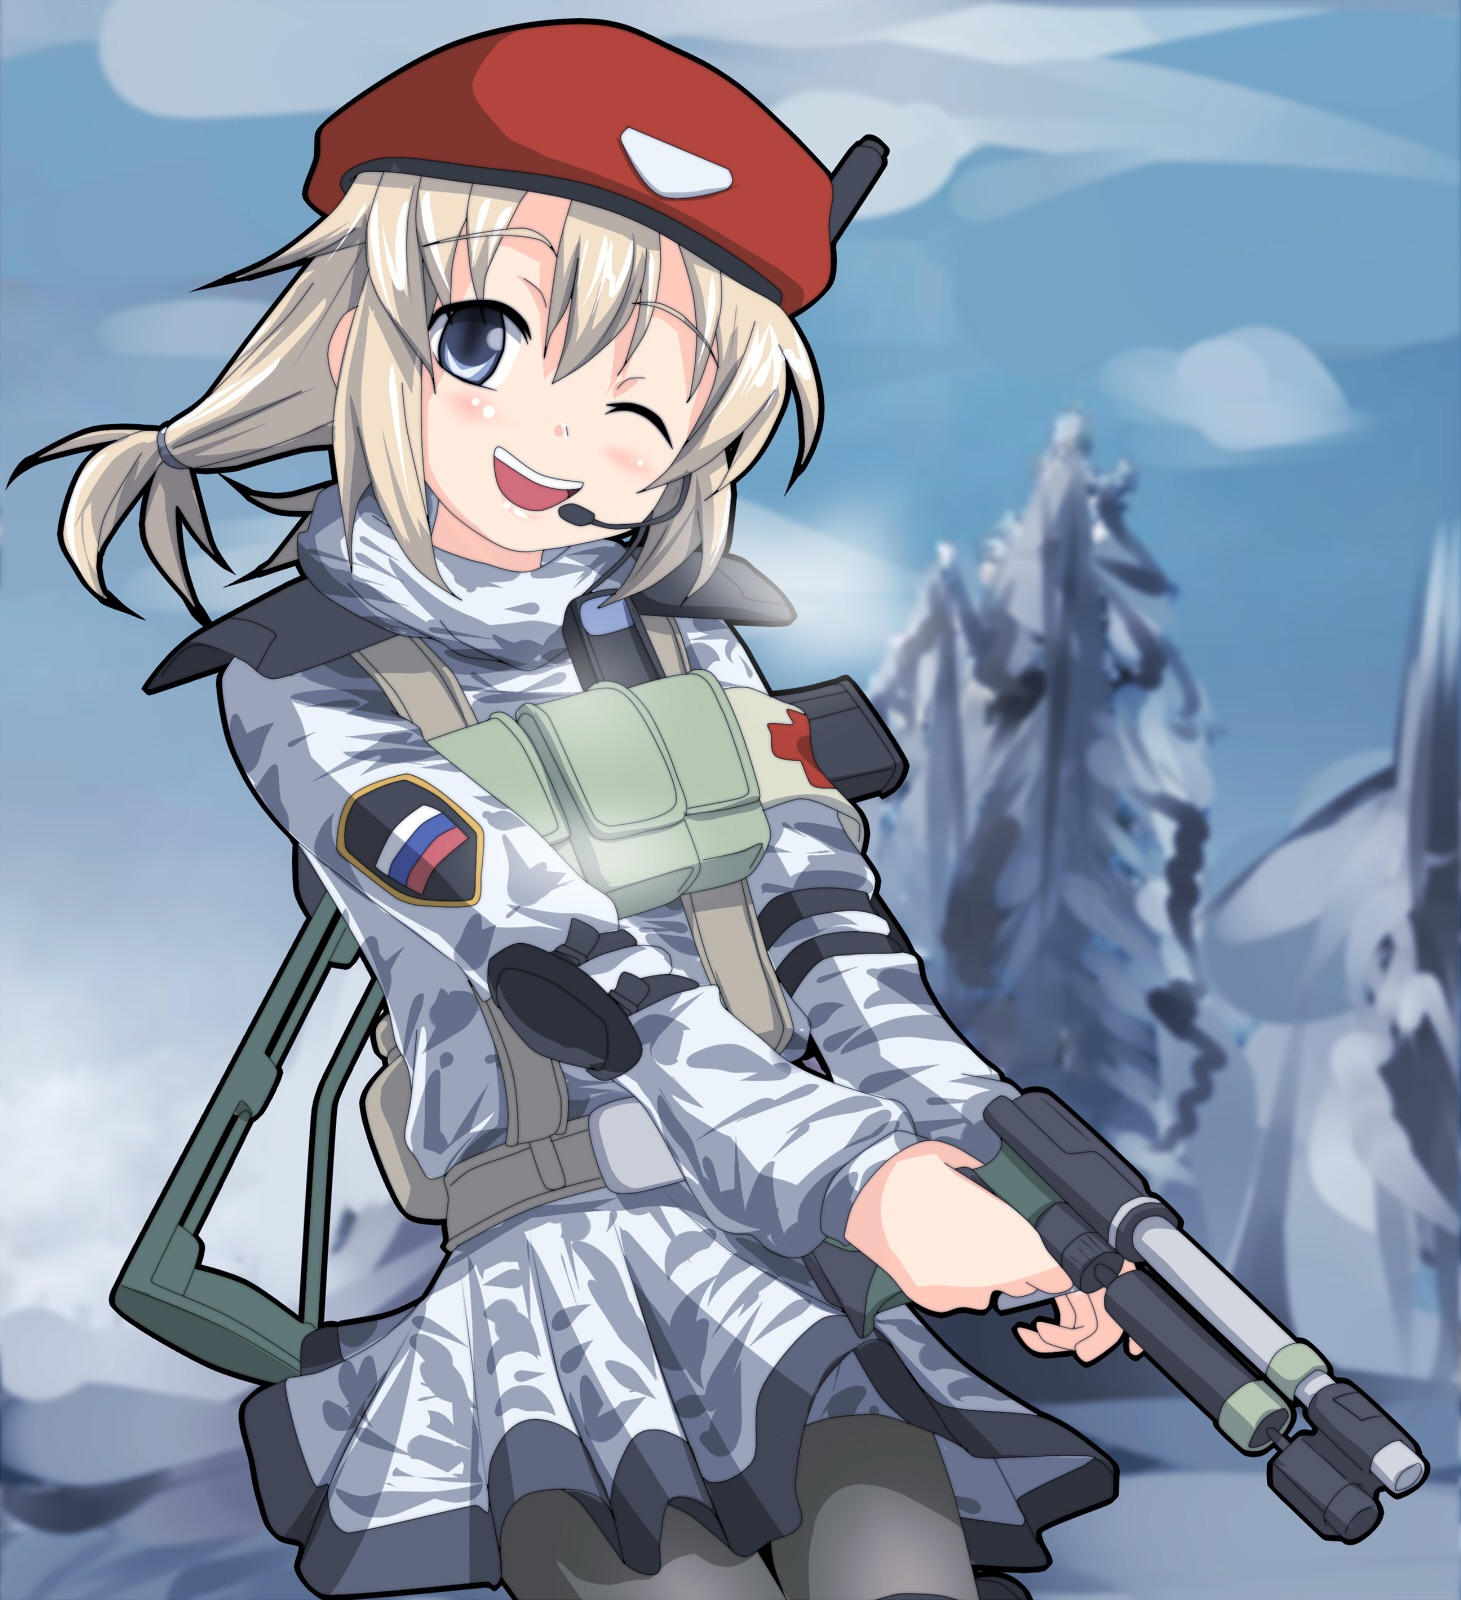 Russian medic girl battlefield know your meme battlefield 4 battlefield 3 battlefield 1 anime voltagebd Gallery